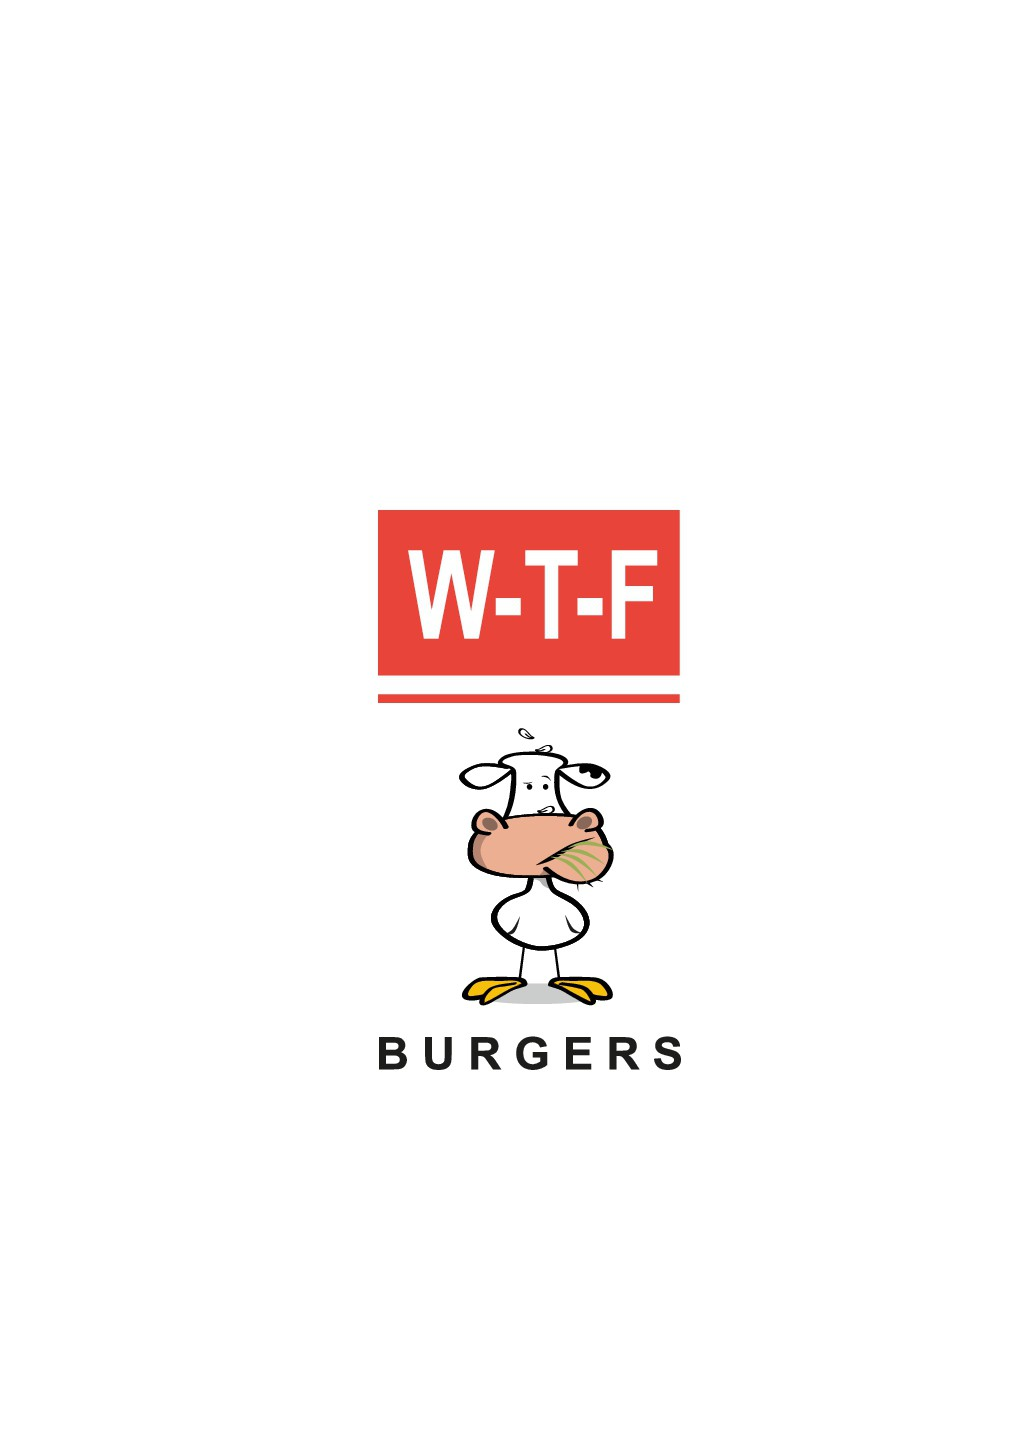 WTF Burger!  Looking for a fun design that incorporates a chicken and a cow!